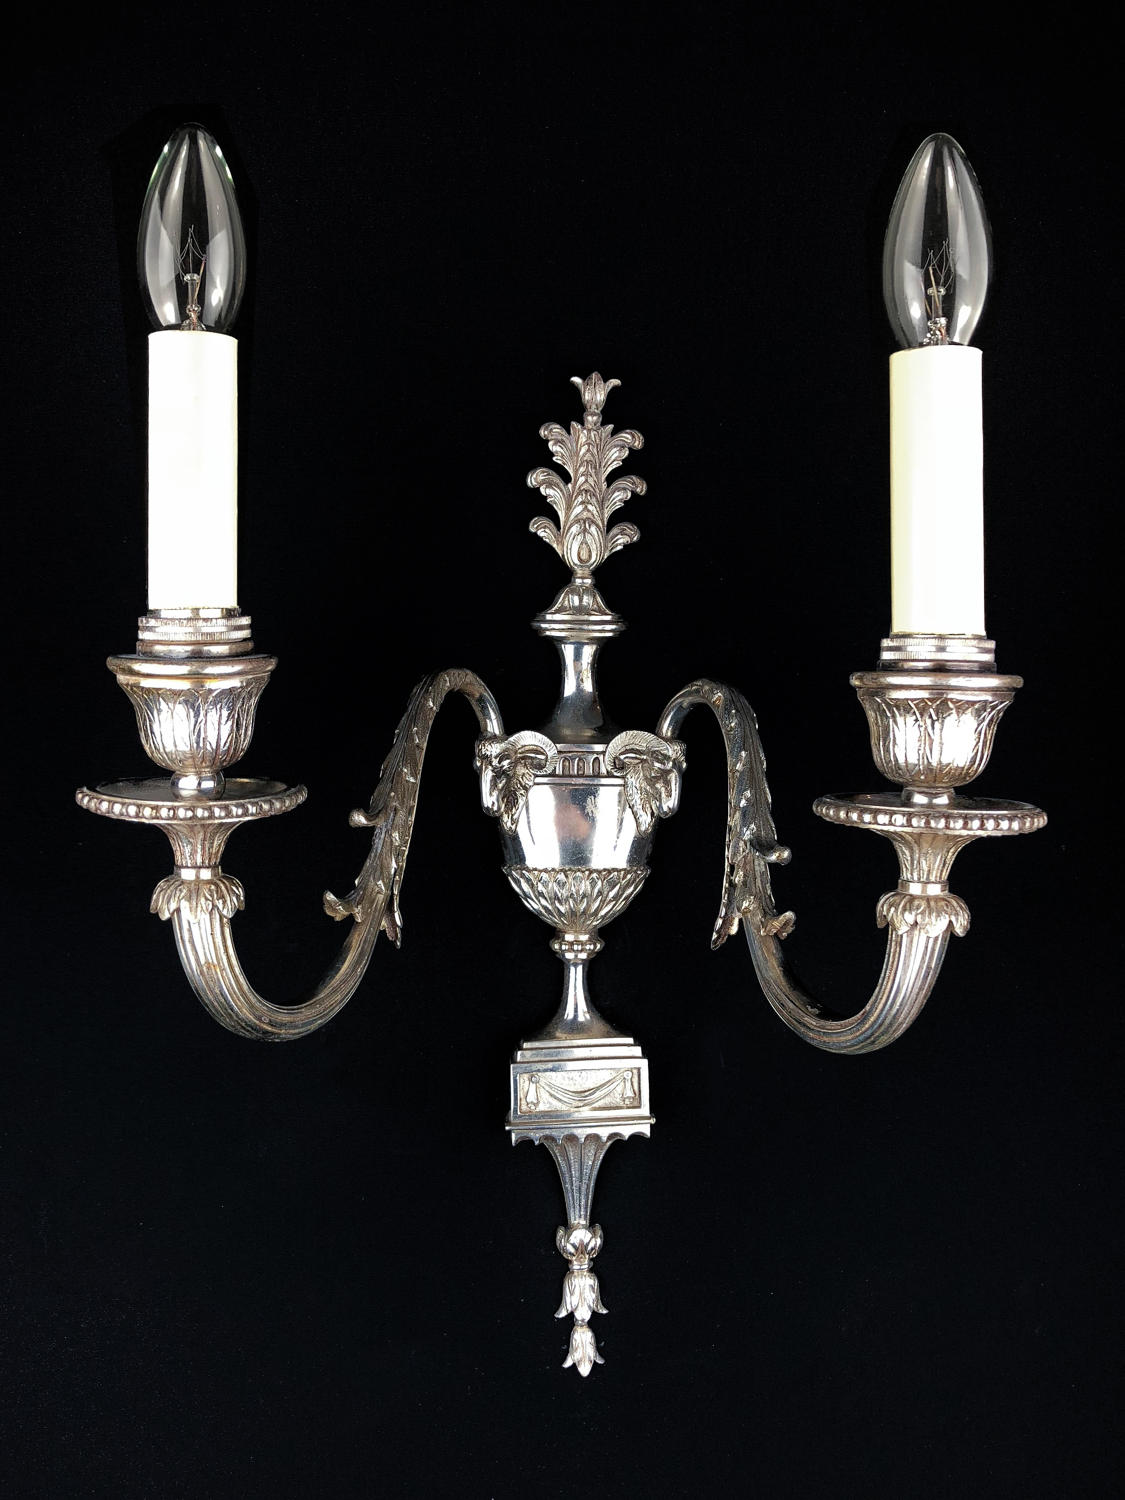 A single two arm silvered wall light